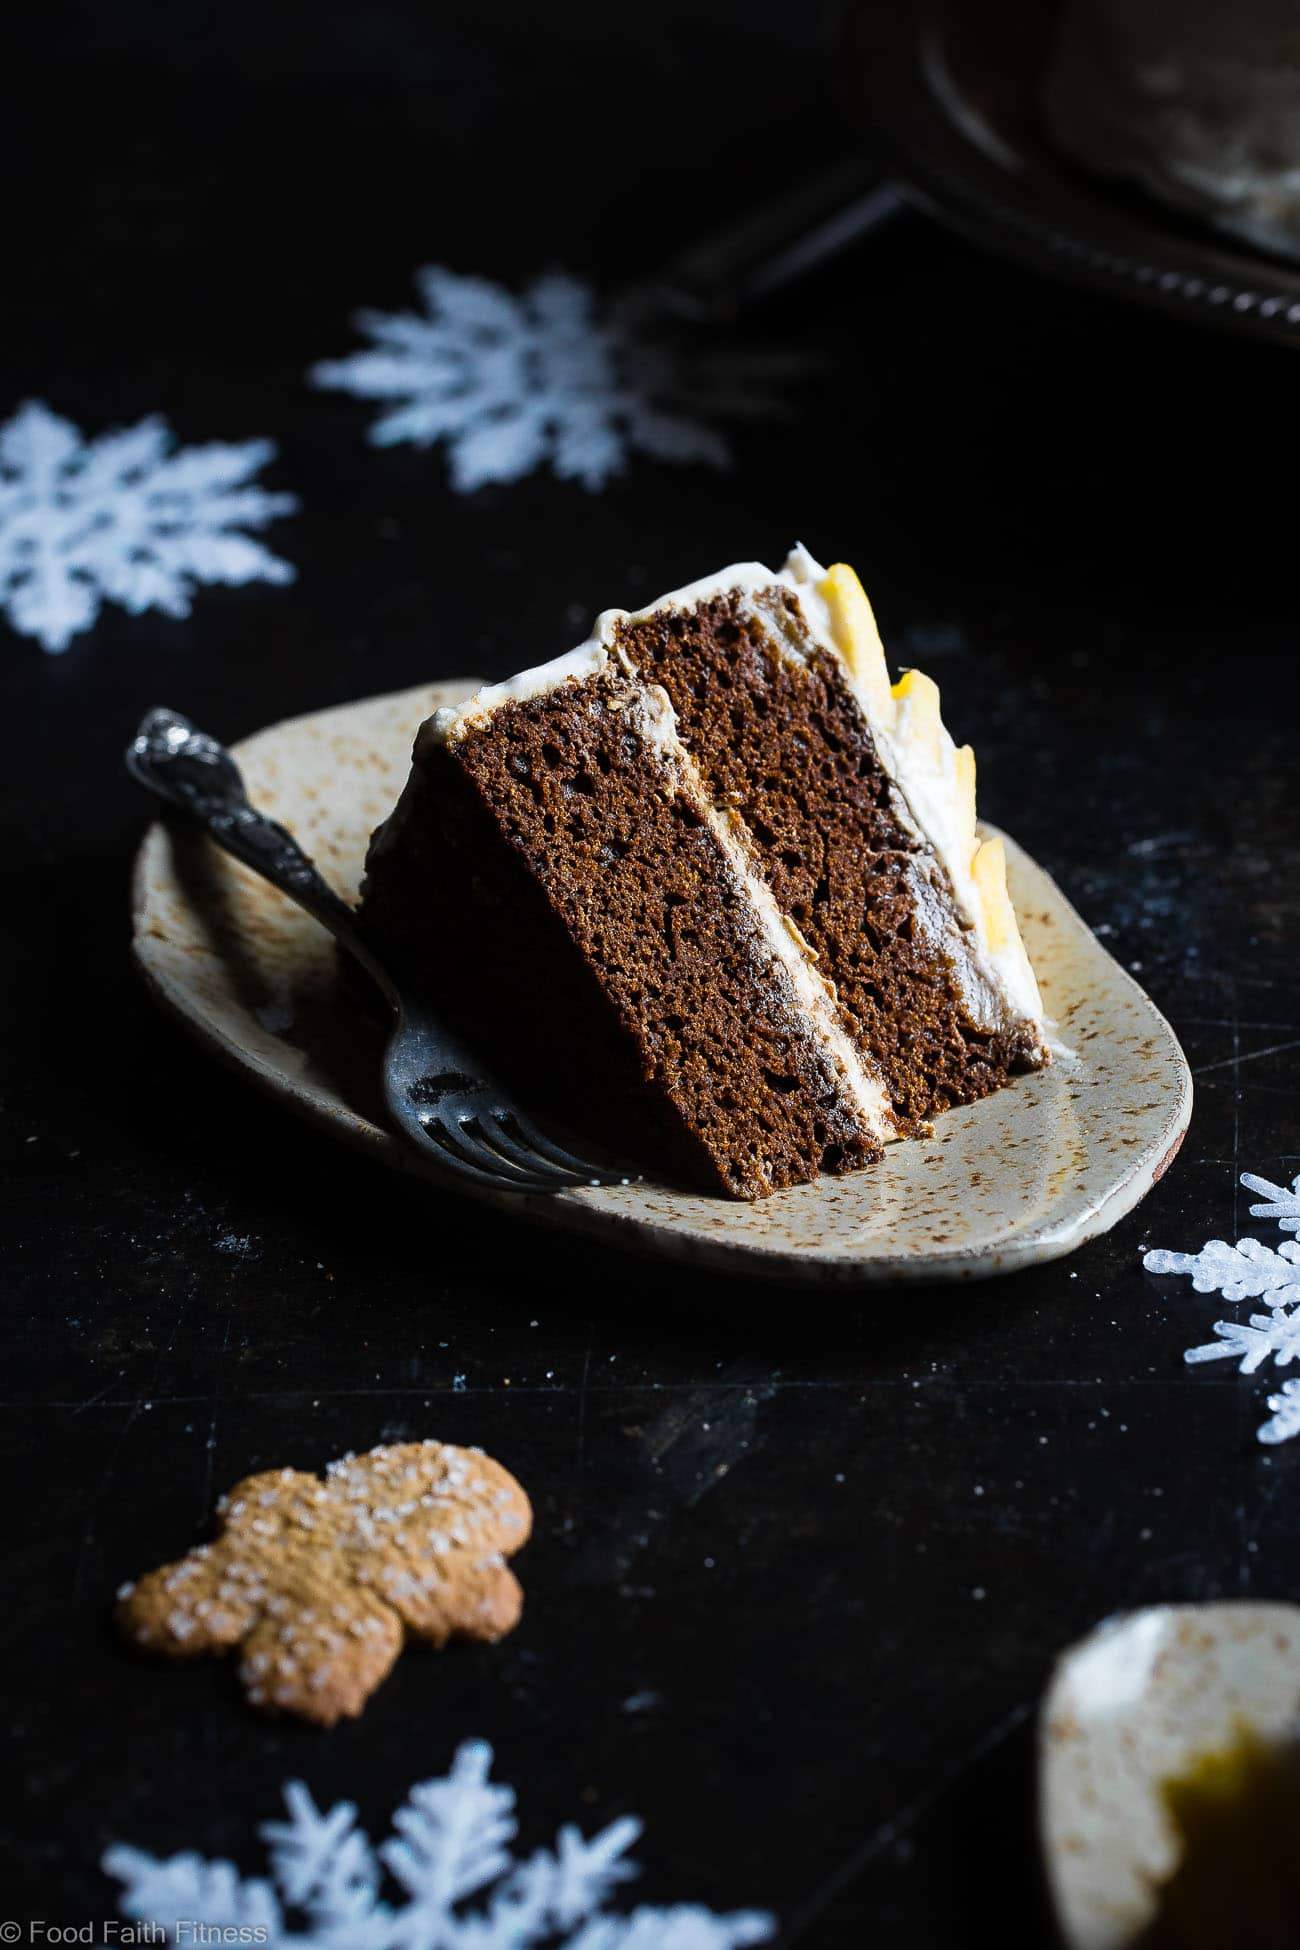 Gluten Free Mango Gingerbread Cake with Coconut Cream - This spicy-sweet, show stopping gluten free gingerbread cake recipe is studded with juicy, fresh mangoes to create a healthy, paleo-friendly, festive dessert for the Holidays! | Foodfaithfitness.com | @FoodFaithFit